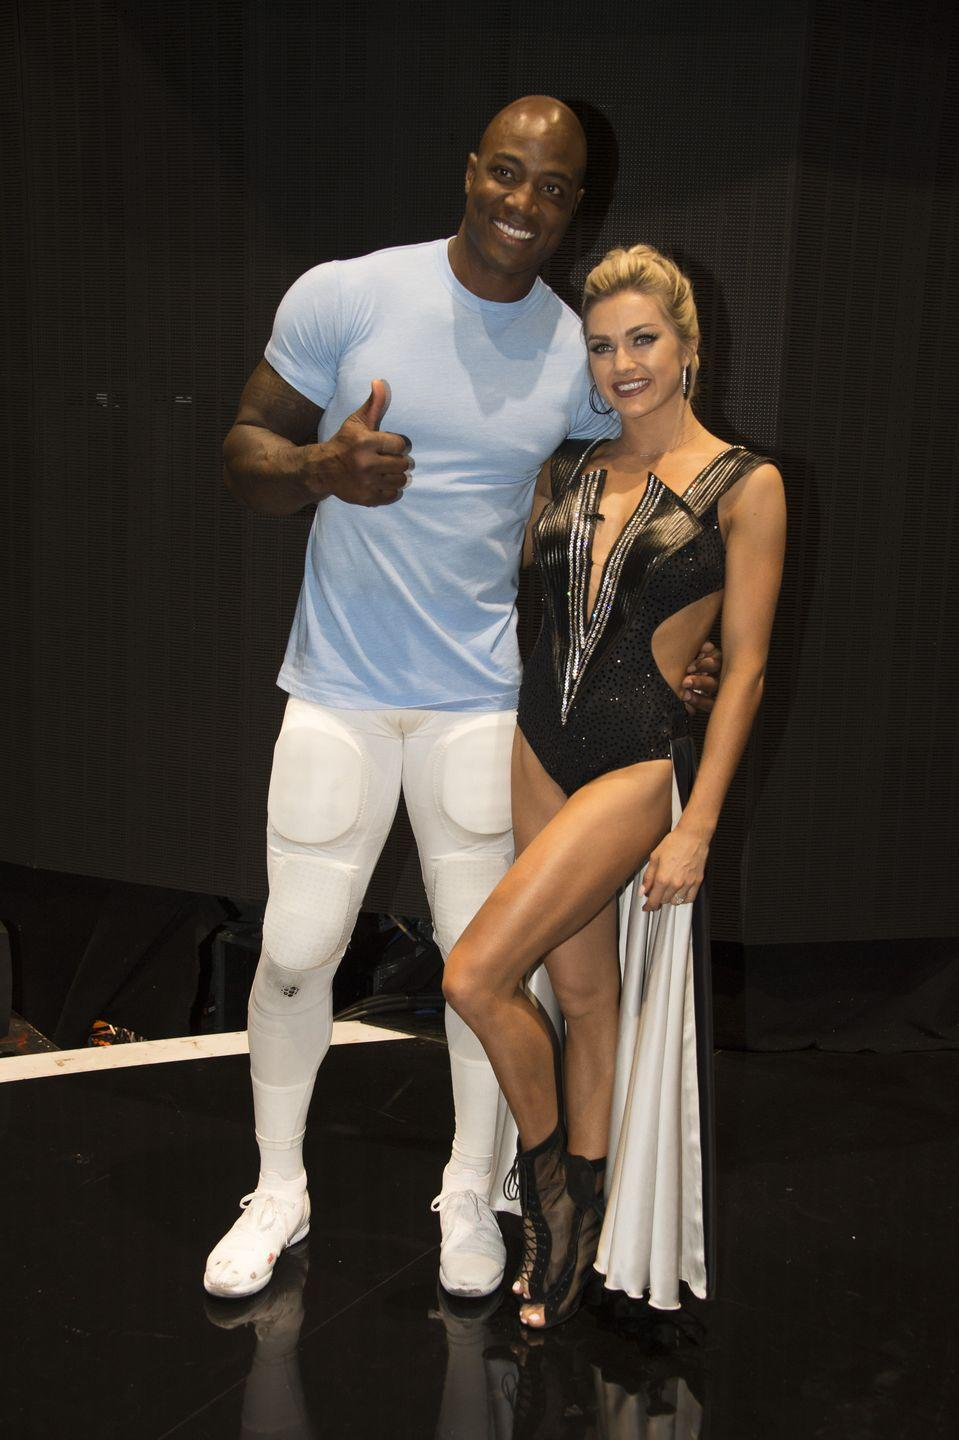 "<p>Former NFL player DeMarcus Ware is familiar with hard hits, but without his pads the ballroom almost took him out. After one rehearsal, his right index finger bent in ways nature never intended.</p><p>The former Superbowl champ shared a graphic video on <a href=""https://twitter.com/DeMarcusWare/status/1049769268743733250"" rel=""nofollow noopener"" target=""_blank"" data-ylk=""slk:Twitter"" class=""link rapid-noclick-resp"">Twitter</a> of his finger injury but didn't let that halt his dancing career.</p>"